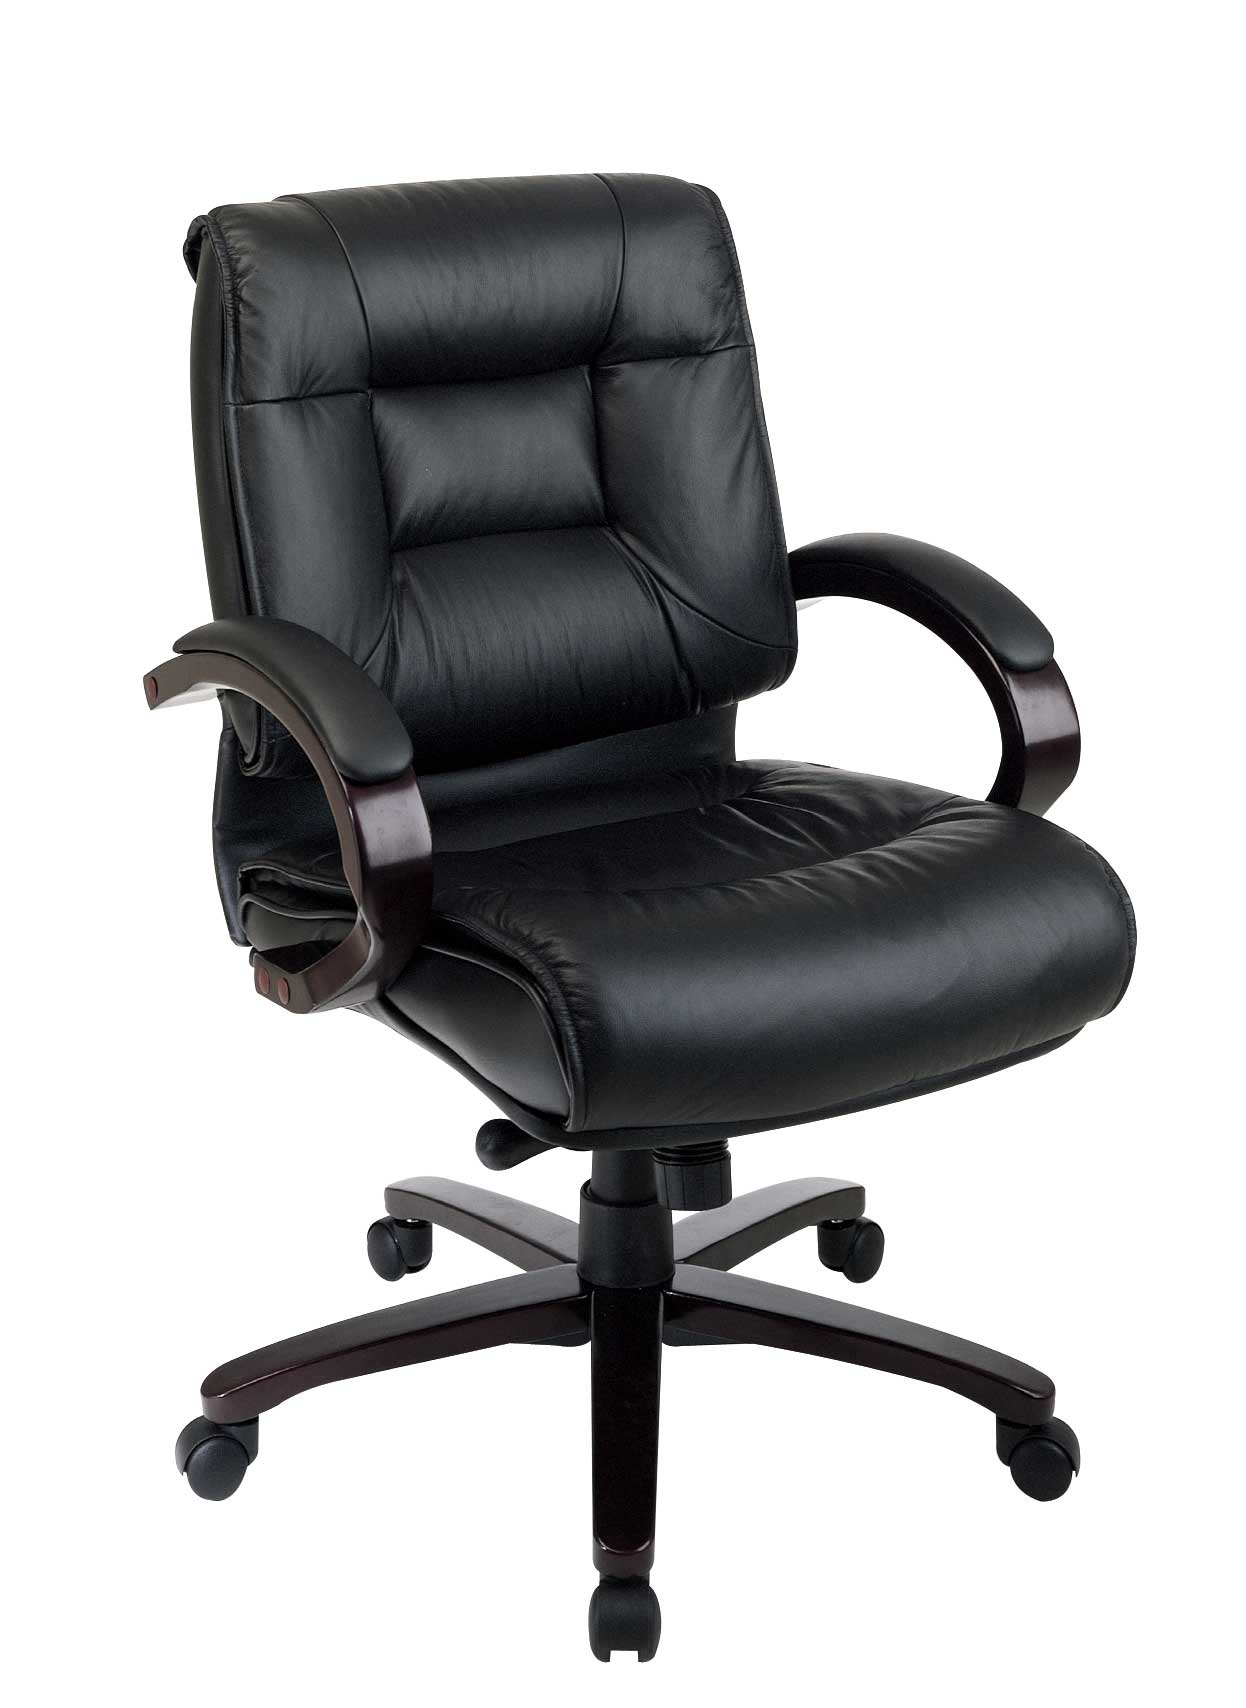 black leather comfortable office chair